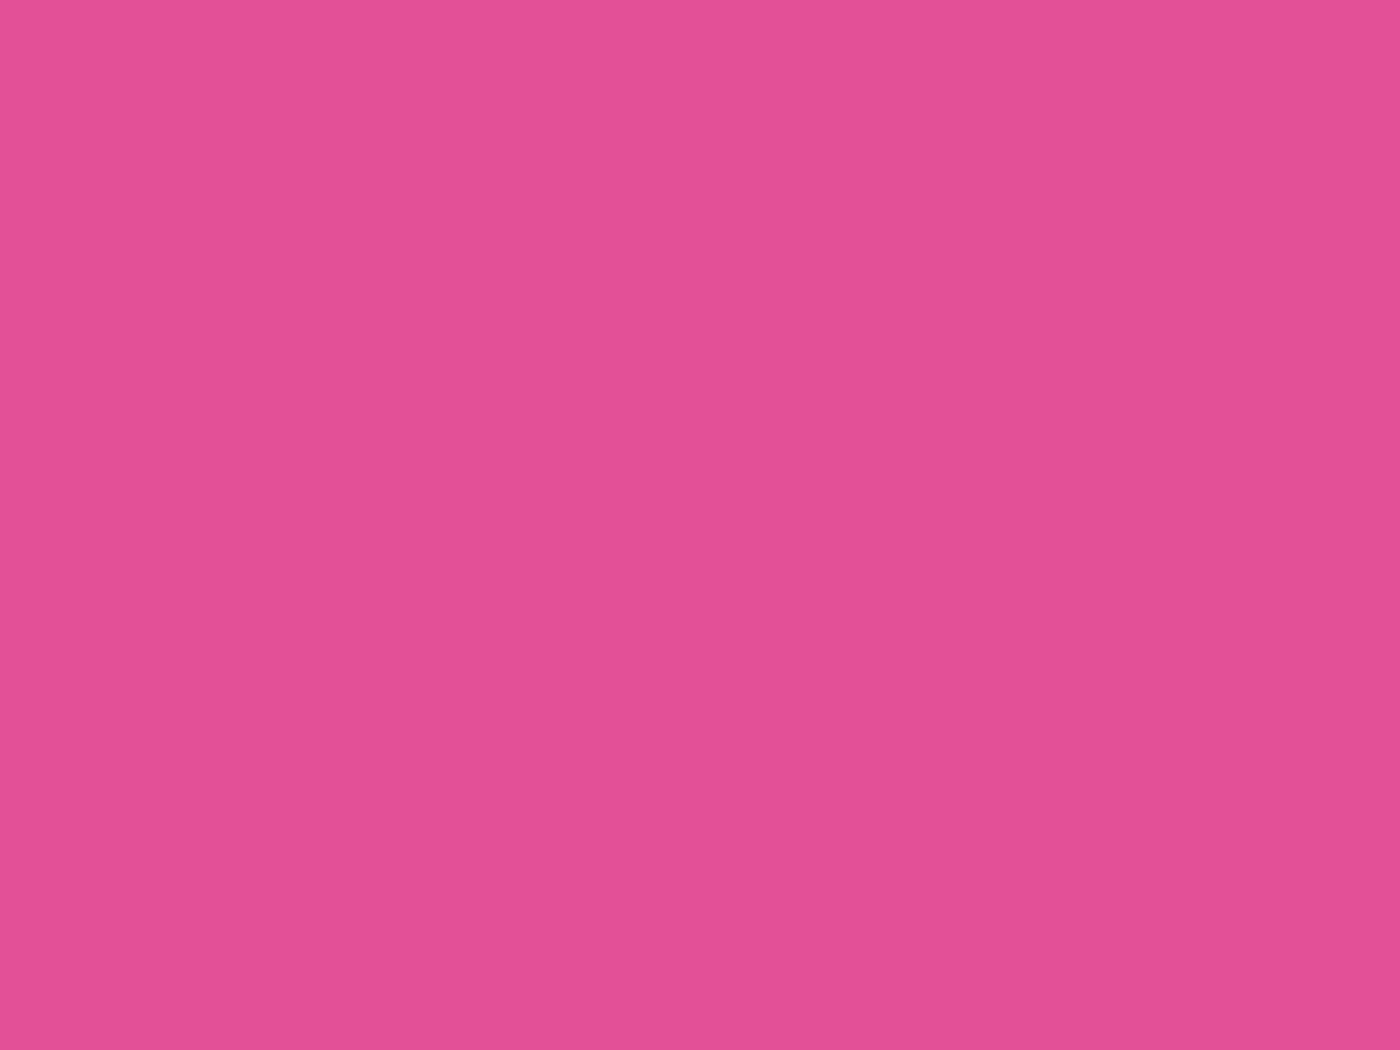 1400x1050 Raspberry Pink Solid Color Background